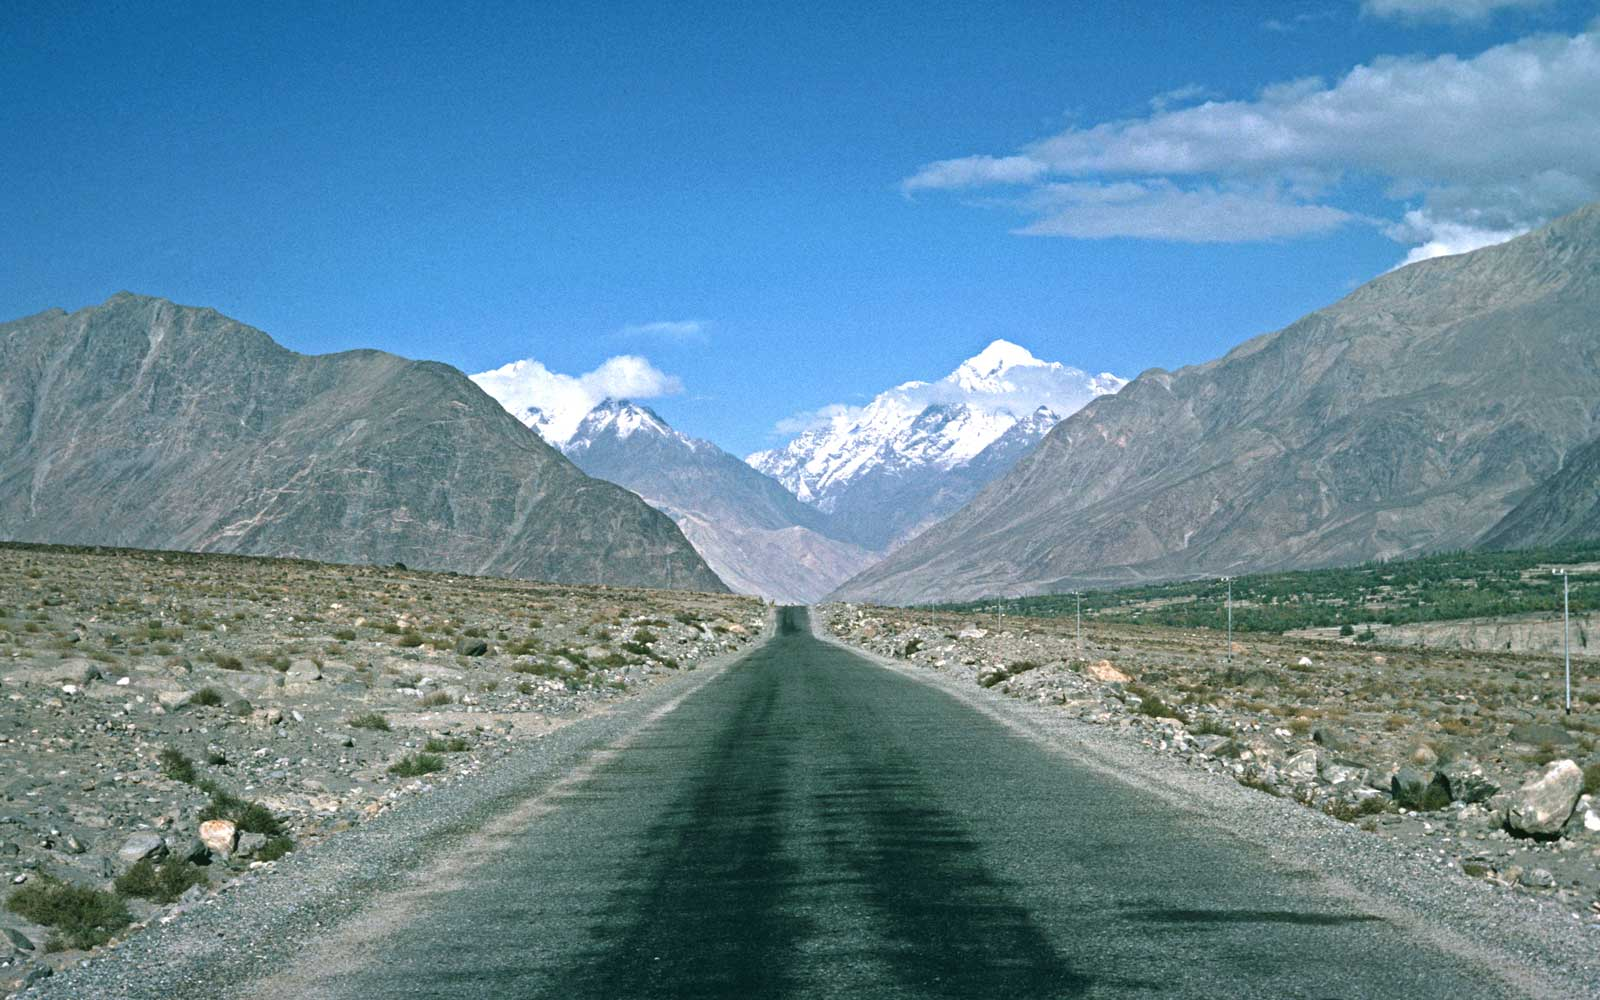 Road trip guide: Conquering the Karakoram Highway